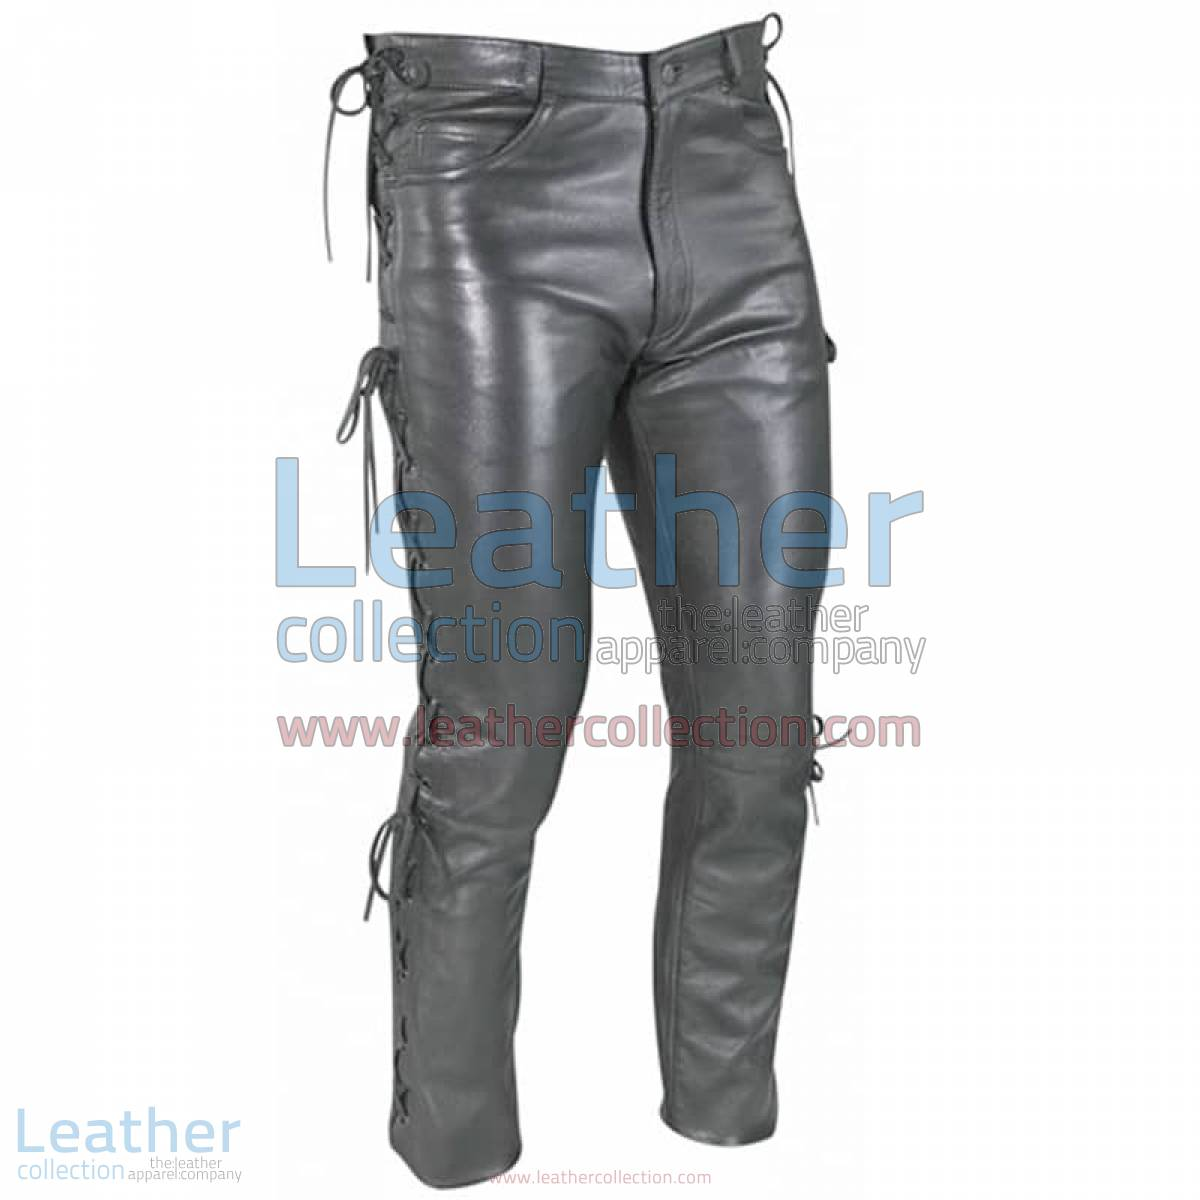 Women Leather Lace Pants | women leather pants,lace pants